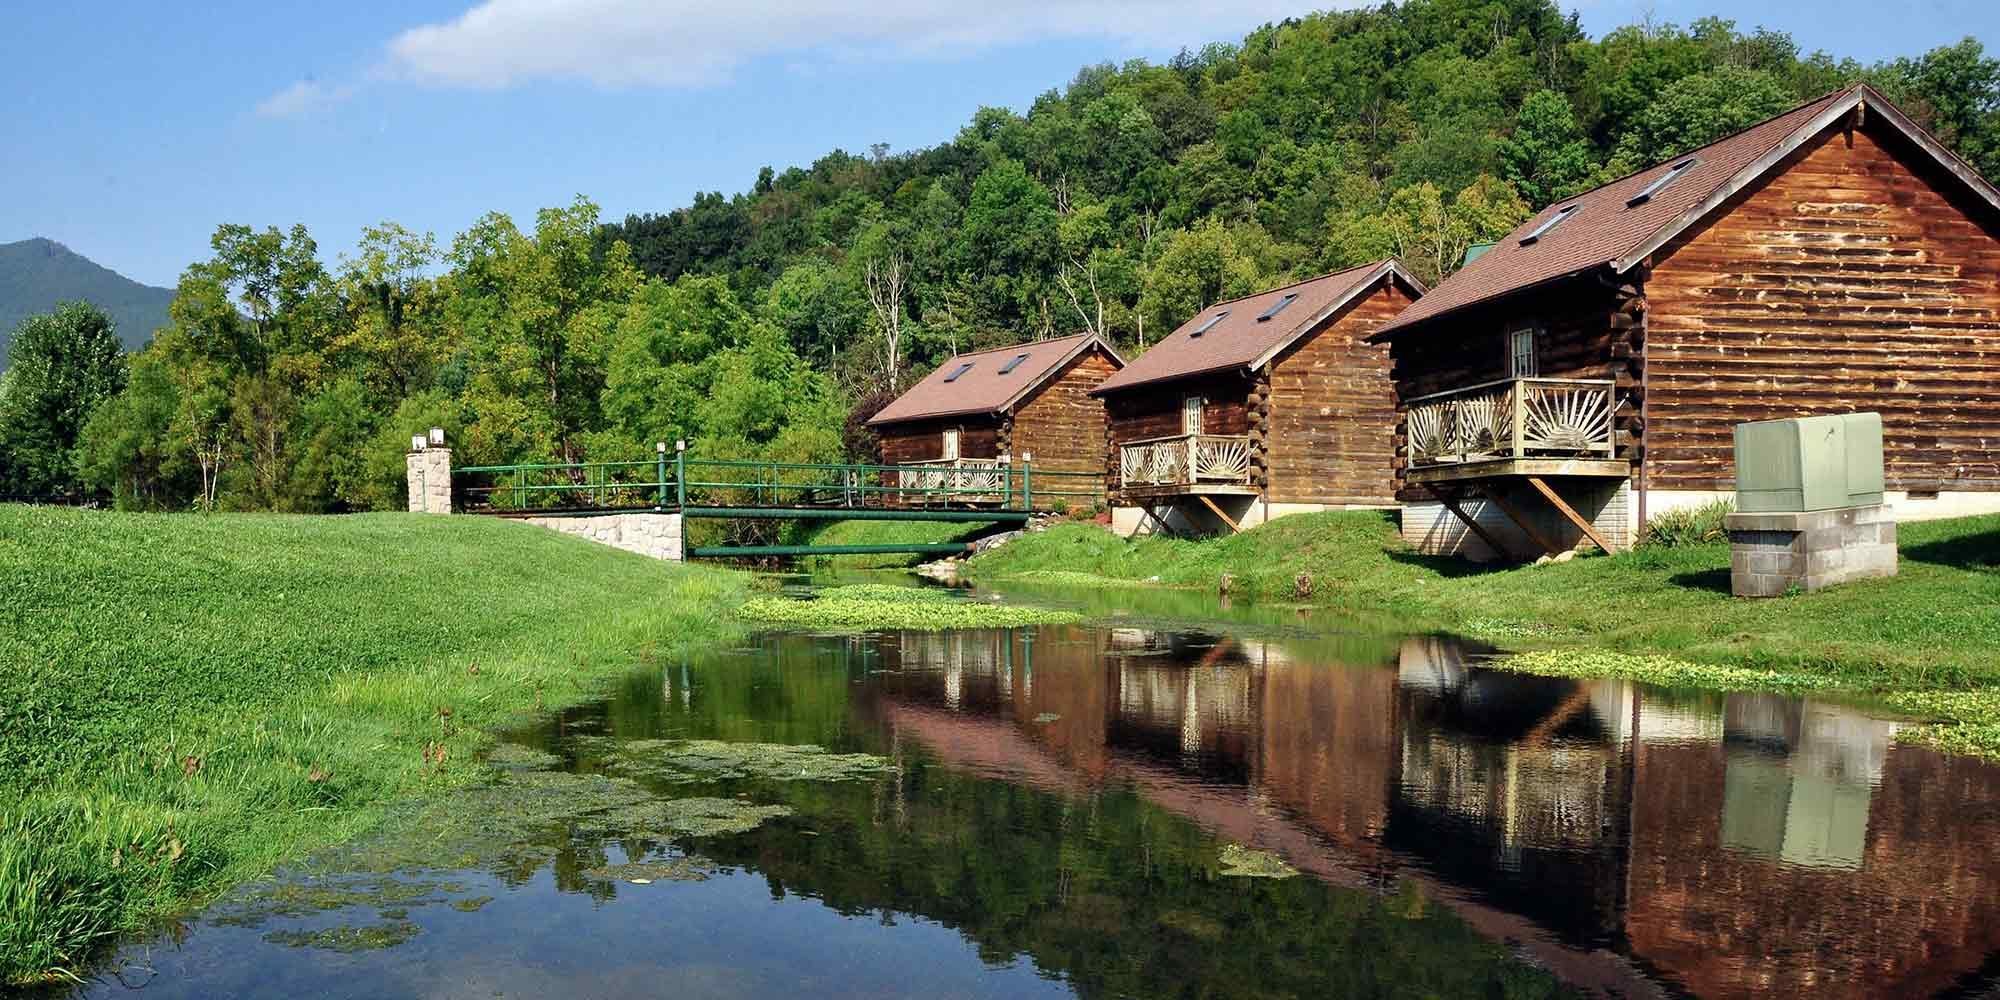 Log cabins beside small body of water